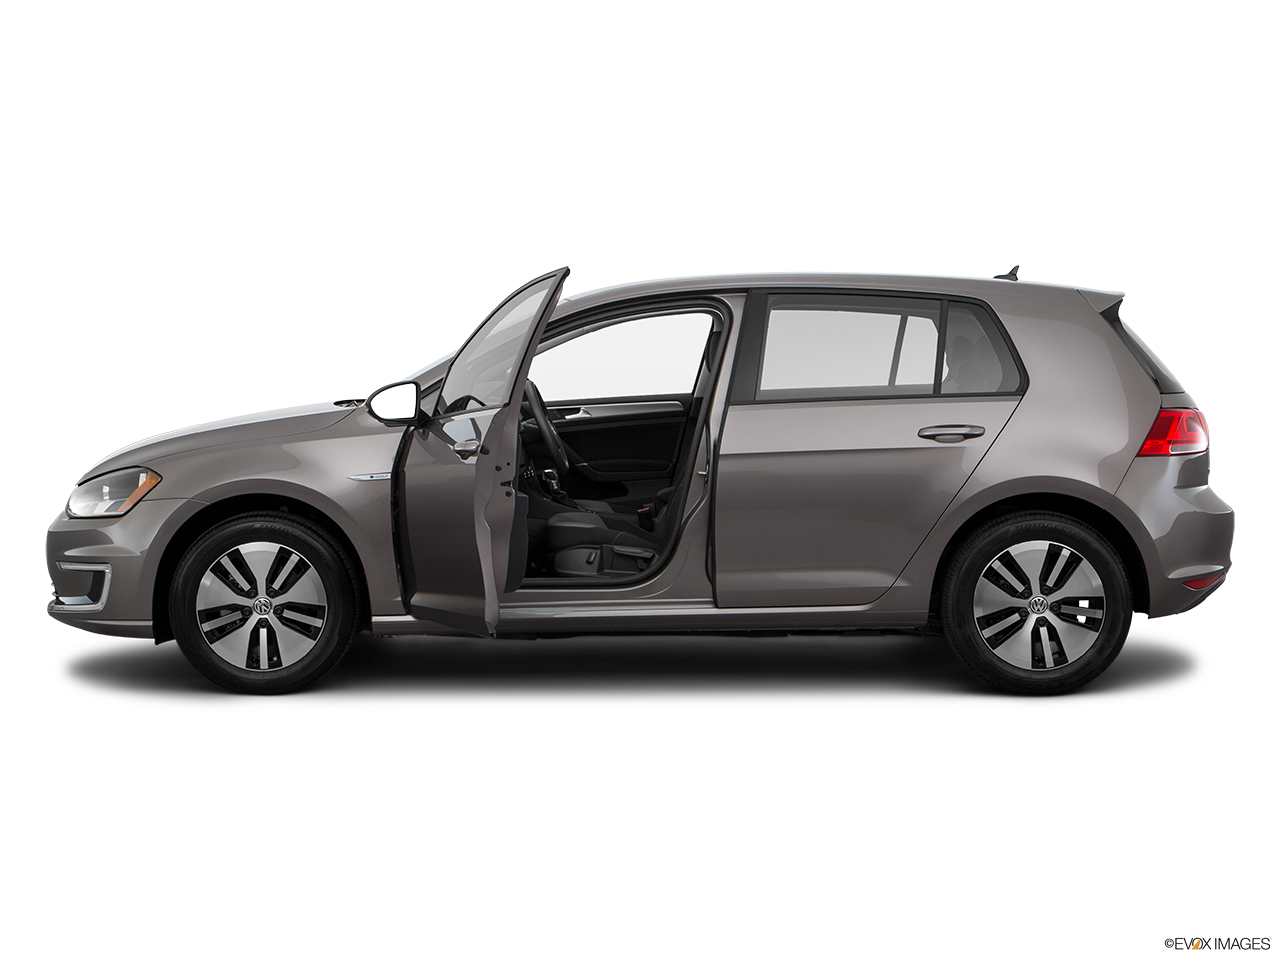 Side view of the Volkswagen e-Golf